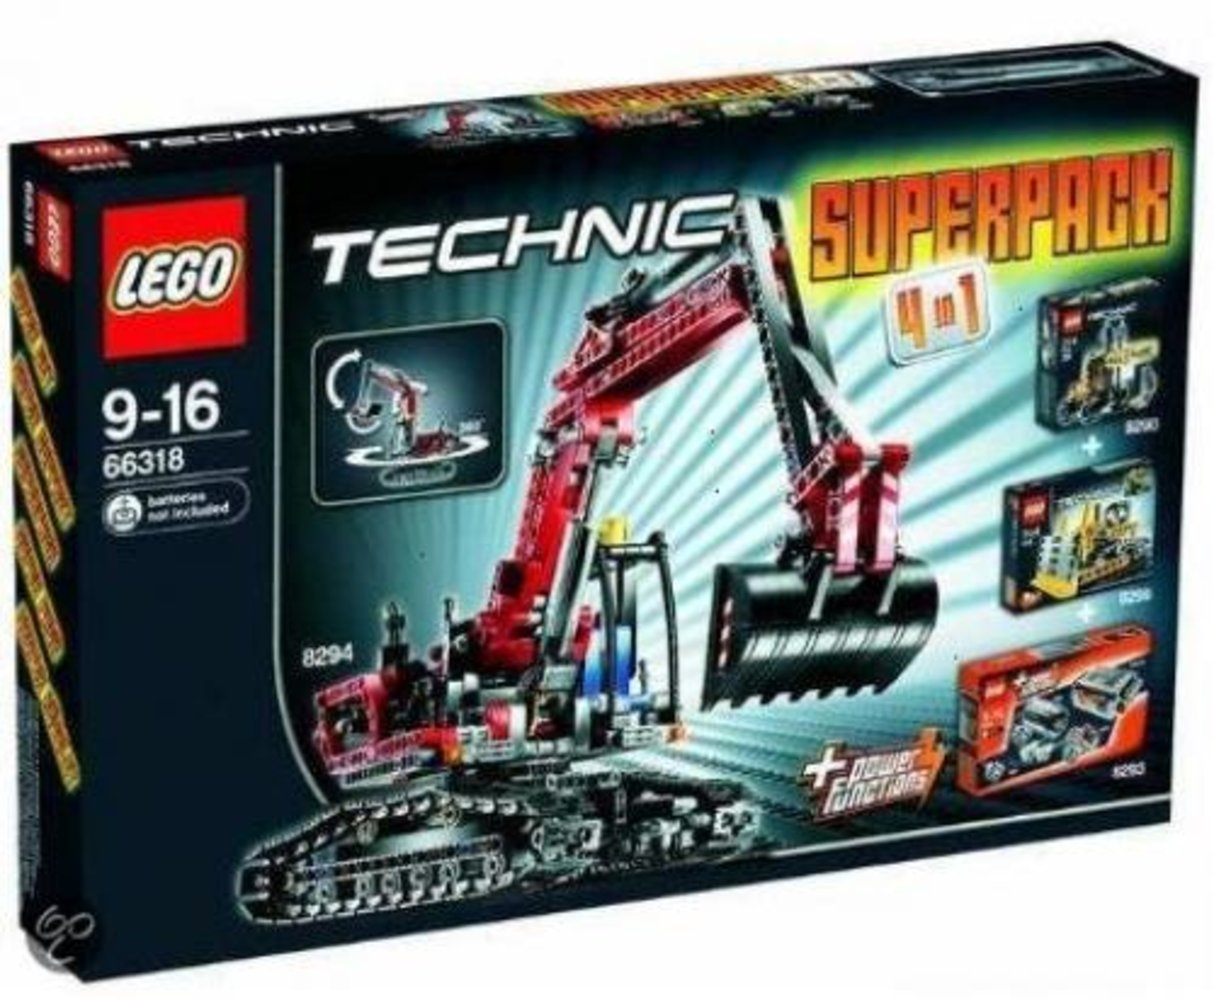 Technic Super Pack 4 in 1 (8259 8290 8293 8294)